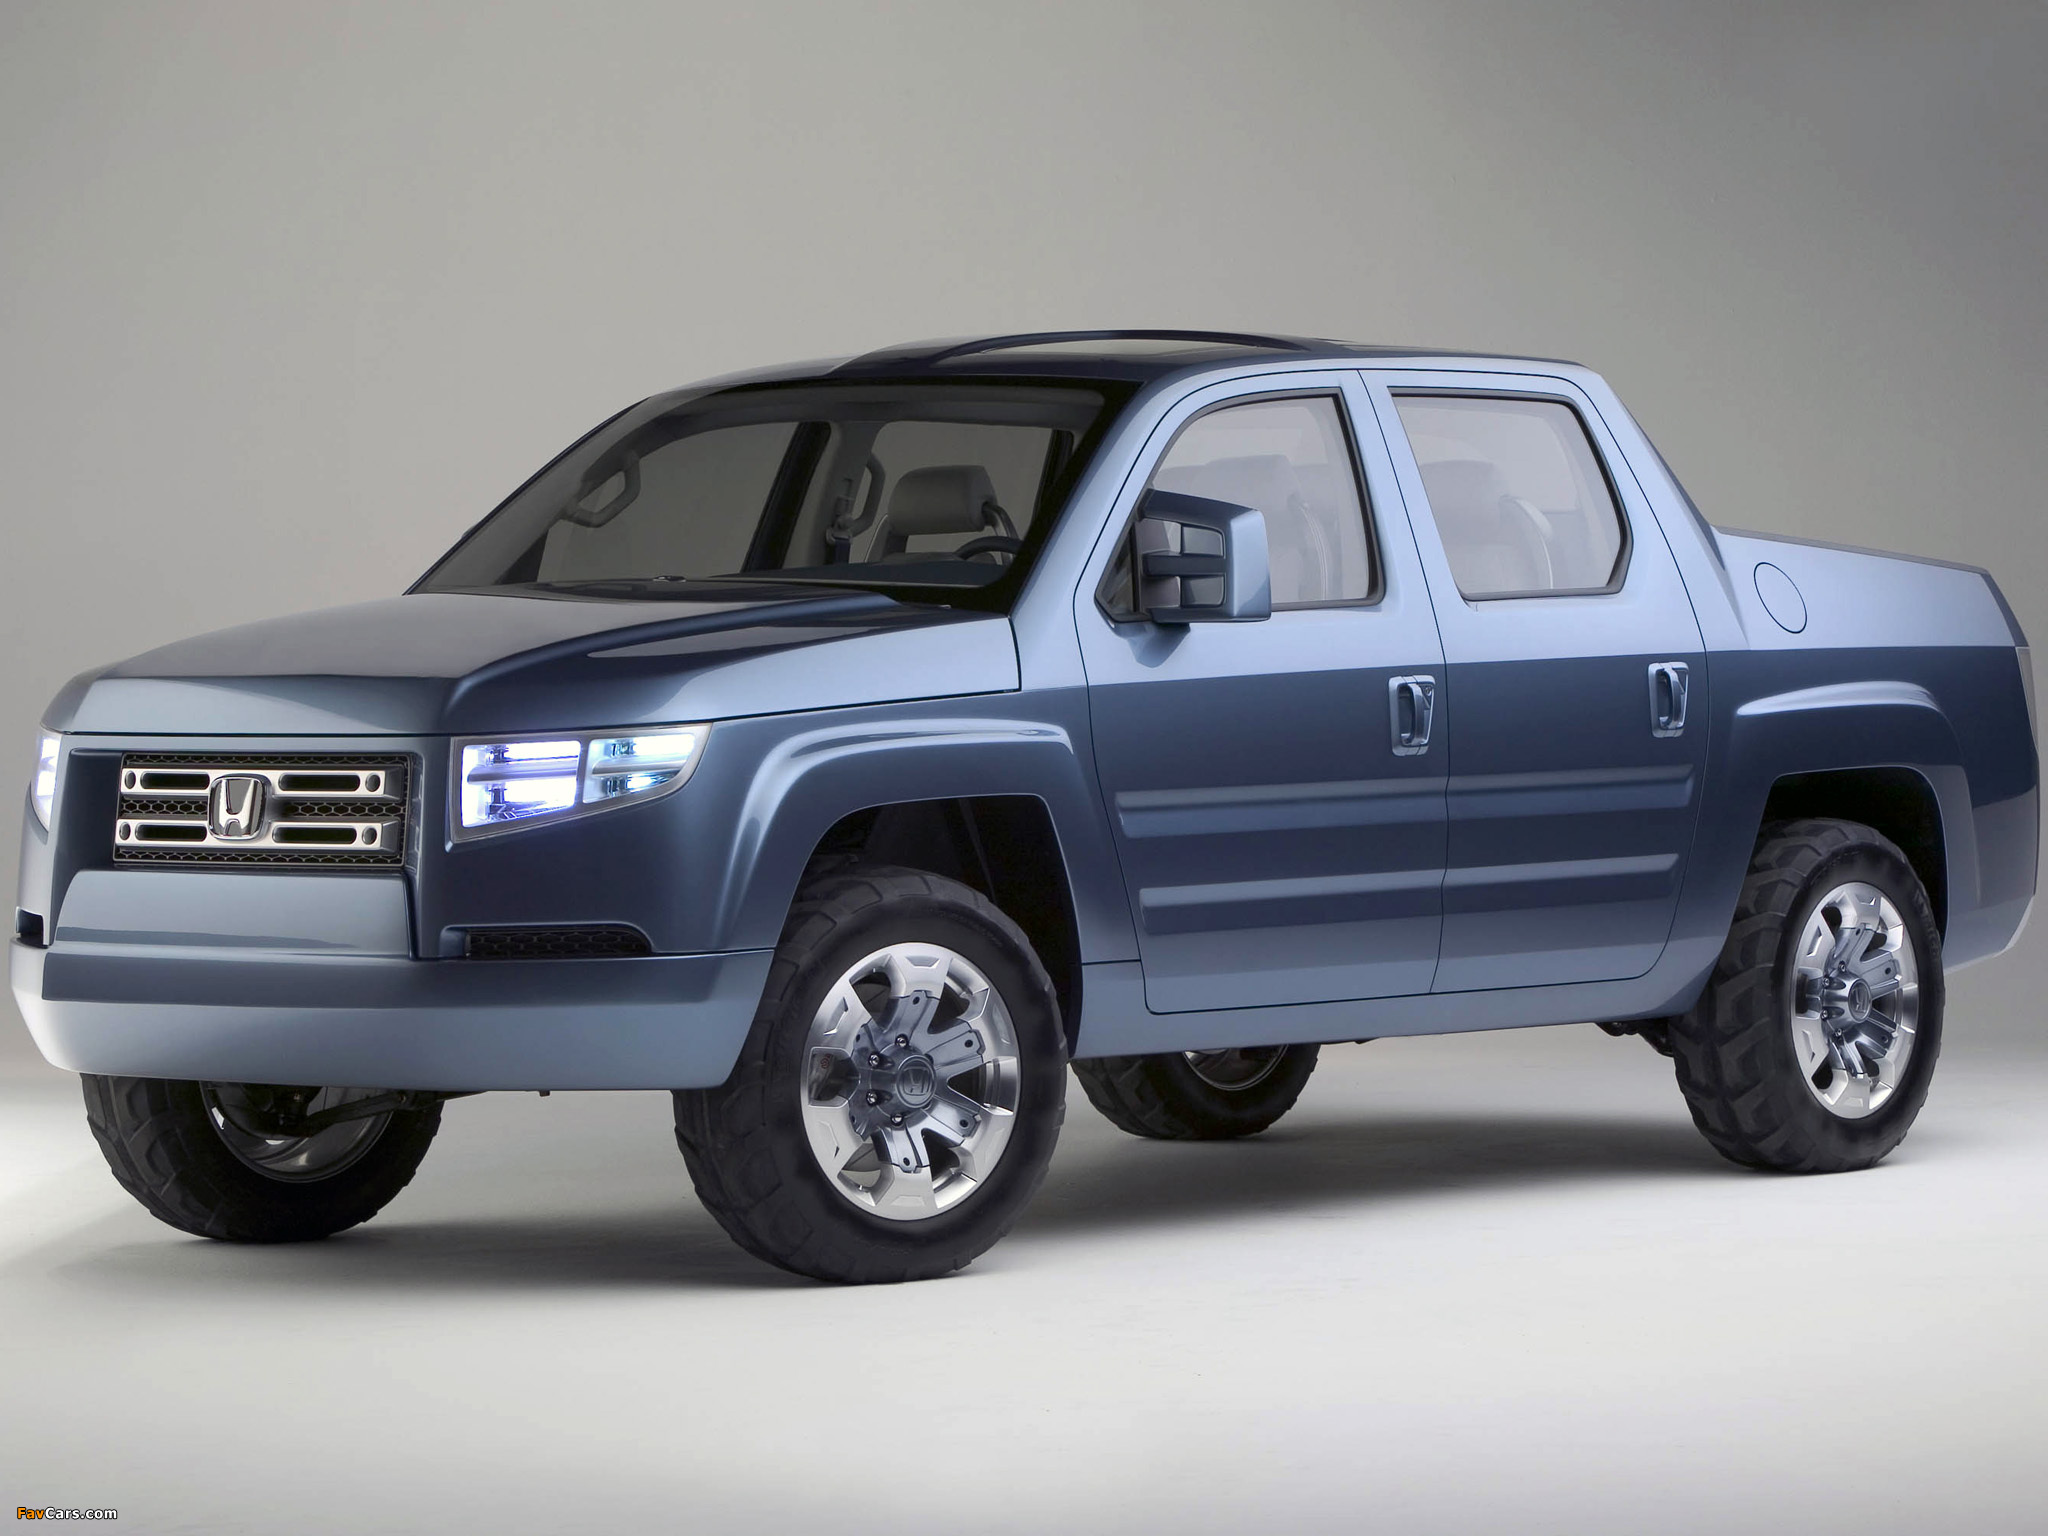 Image Result For Safety Rating Of Honda Ridgeline